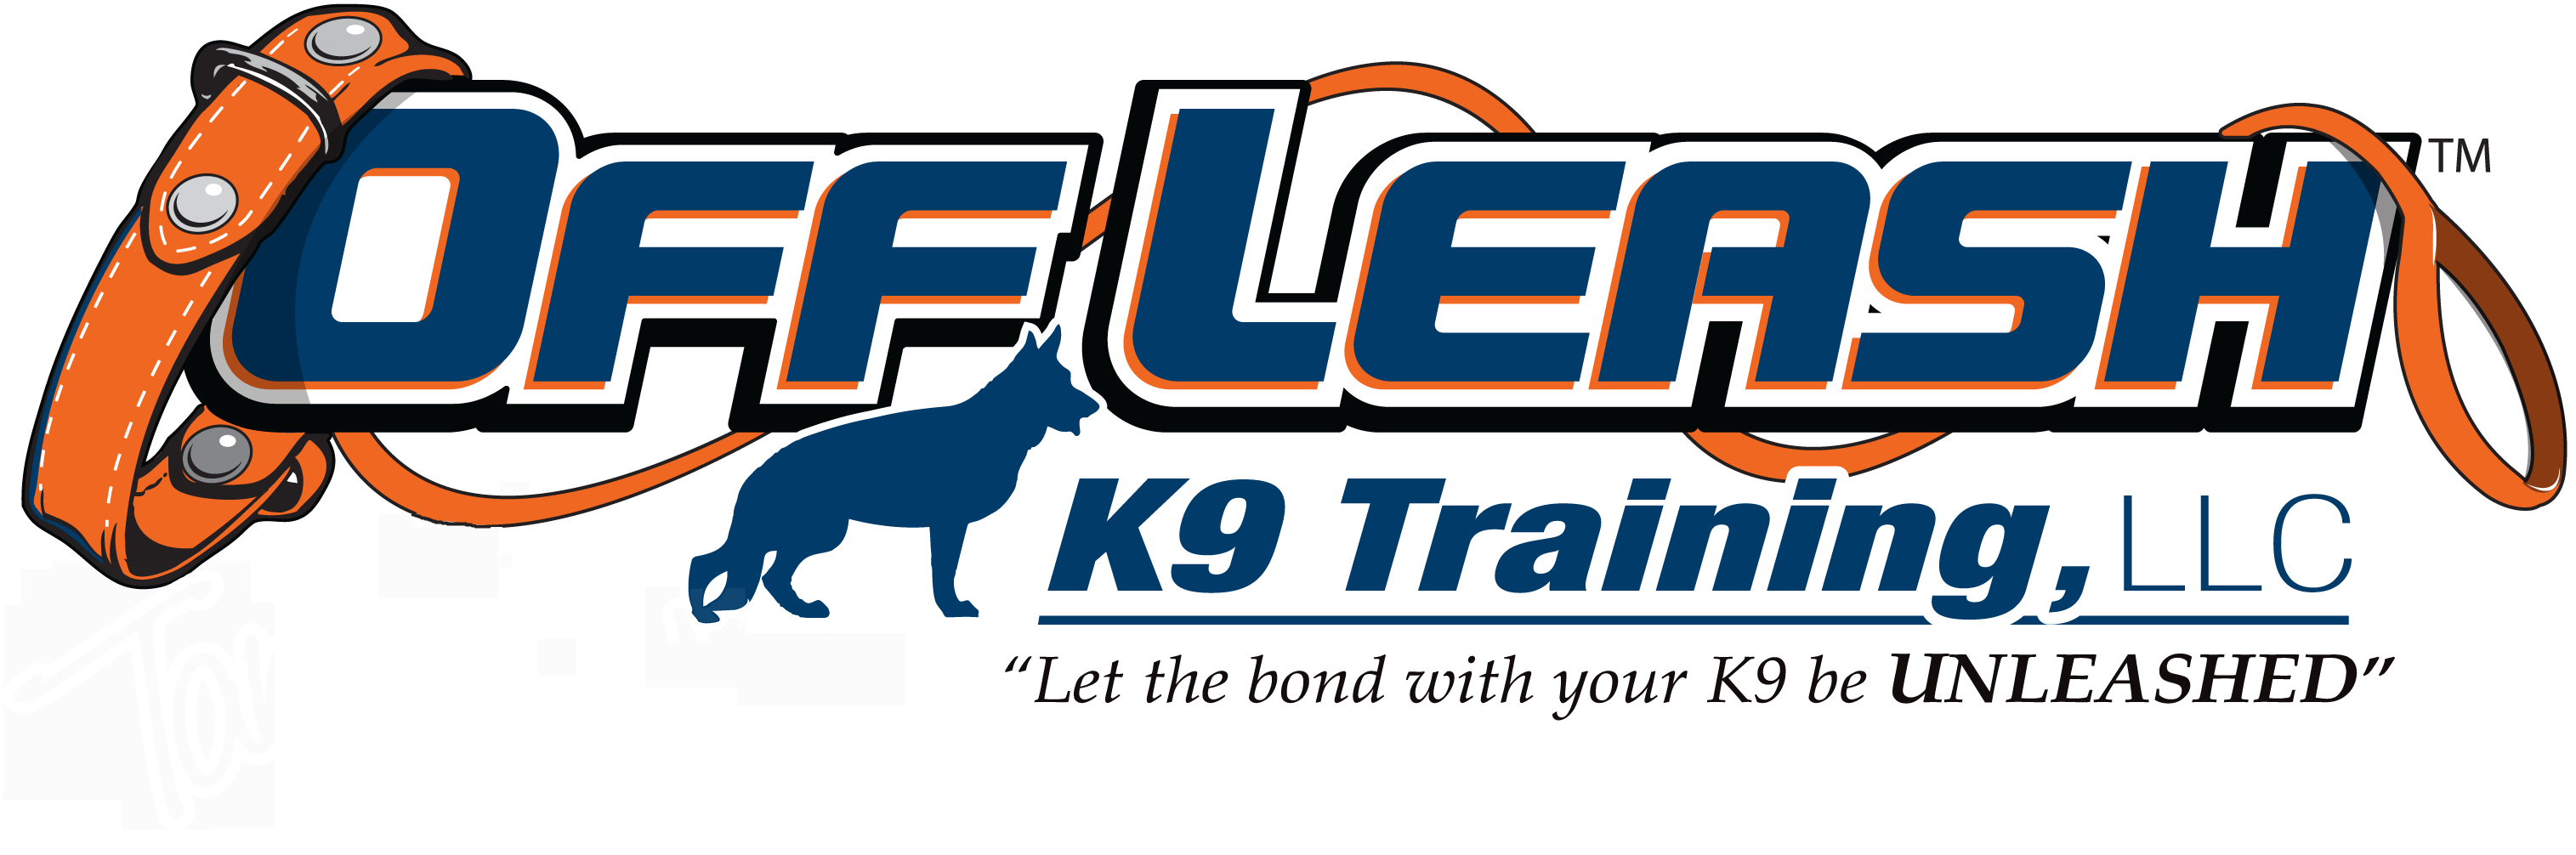 Offleash K9 Dog Training in Laredo Texas